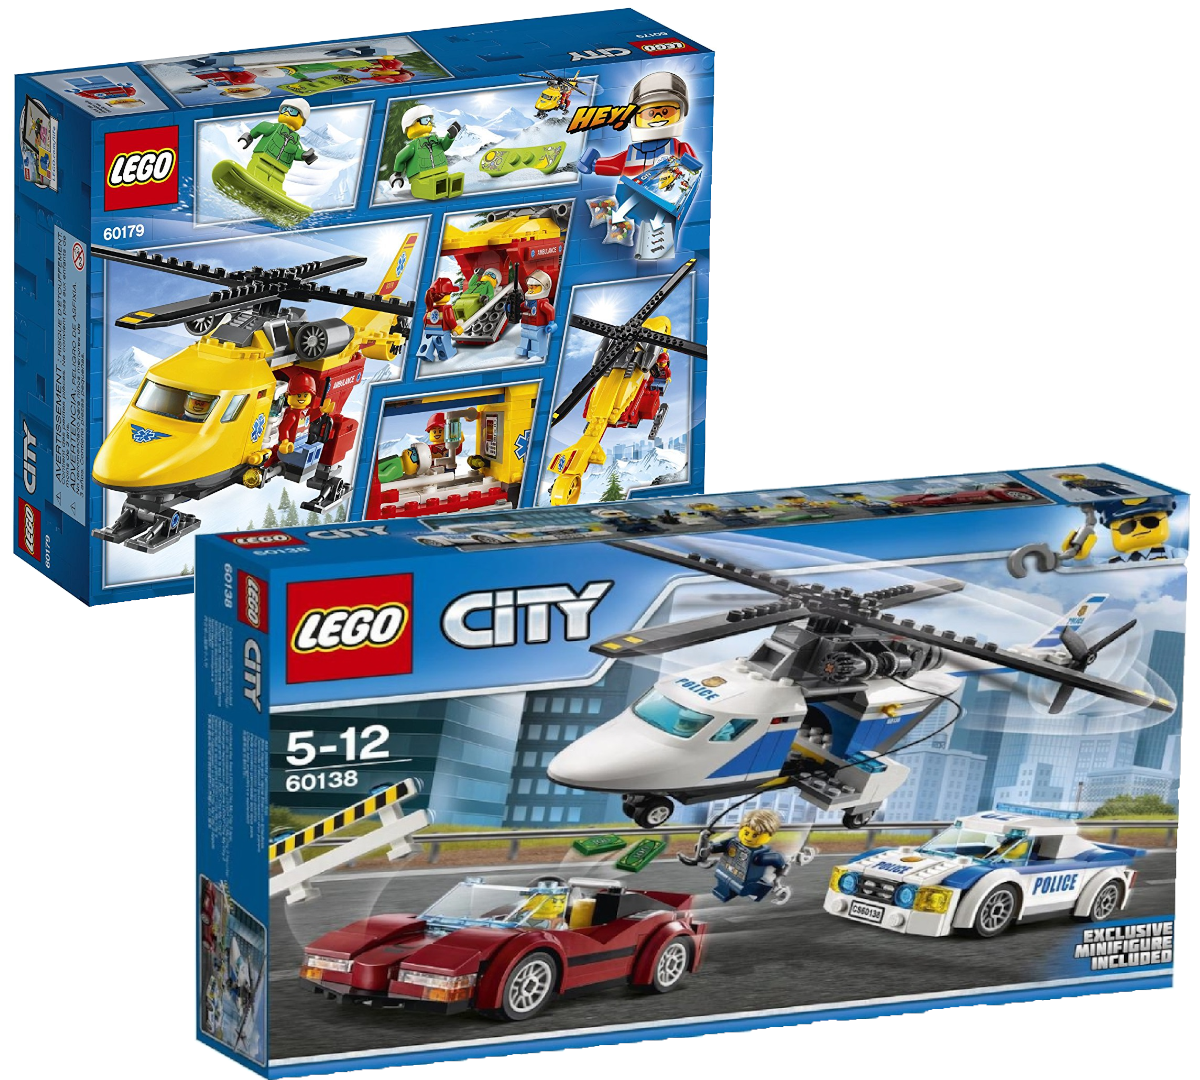 LEGO  città (60179) Ambulance Helicopter e (60138) High Speed Chase Bundle nuovo  Sito ufficiale